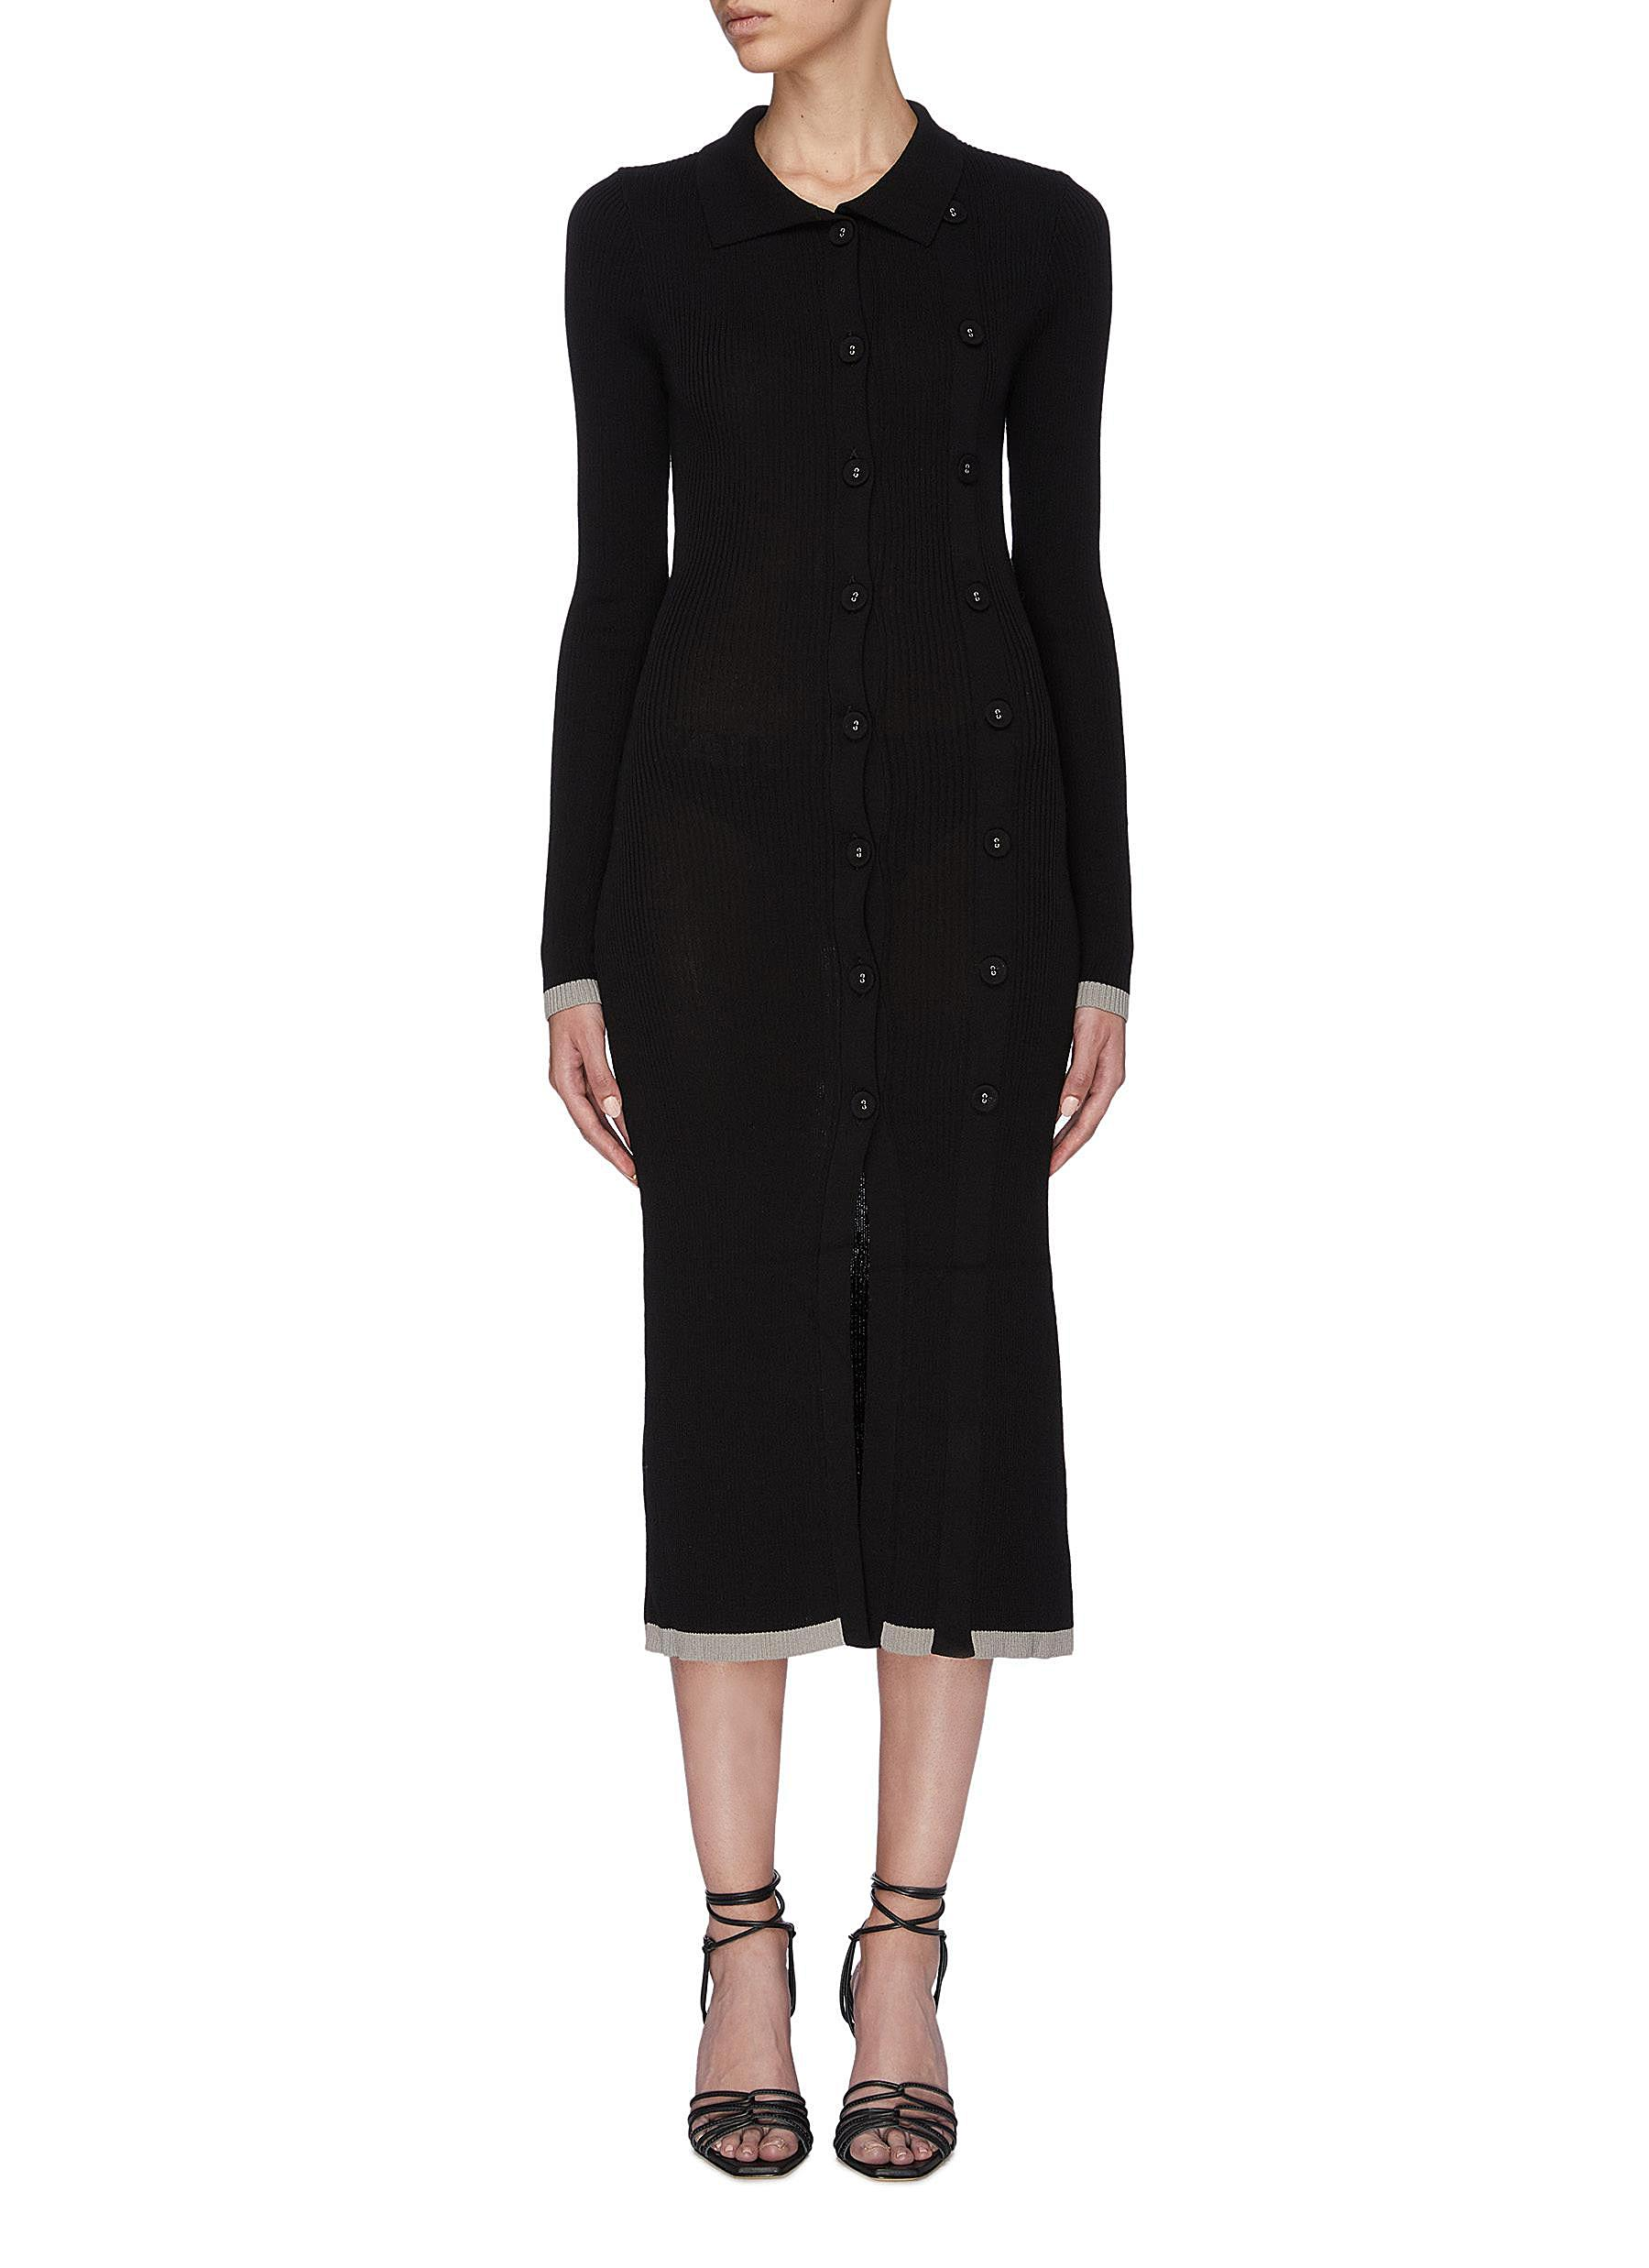 Double button front rib knit long sleeve midi dress by Christopher Esber